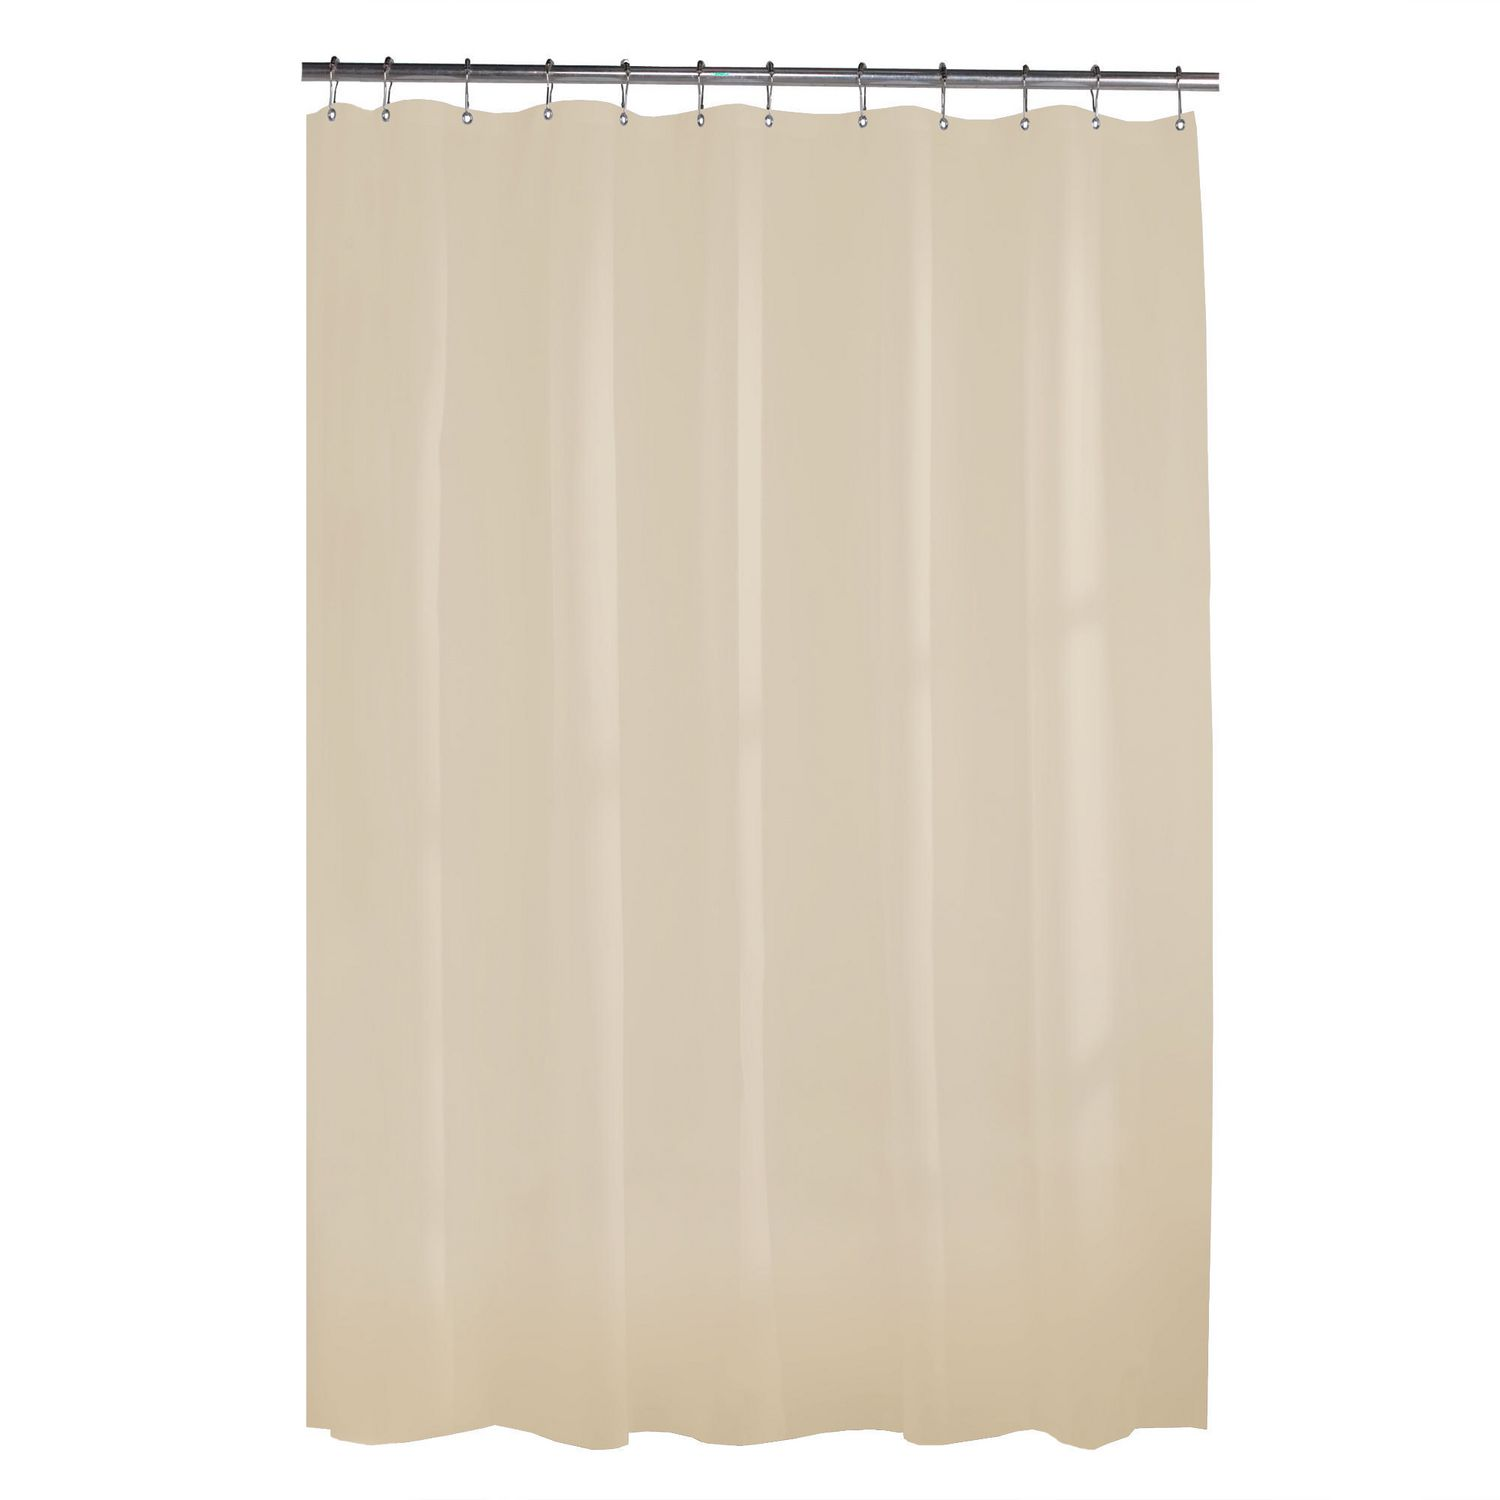 full then double shower curtain x zmmain at beige out polyester hookless zoom click photo w product h put reset